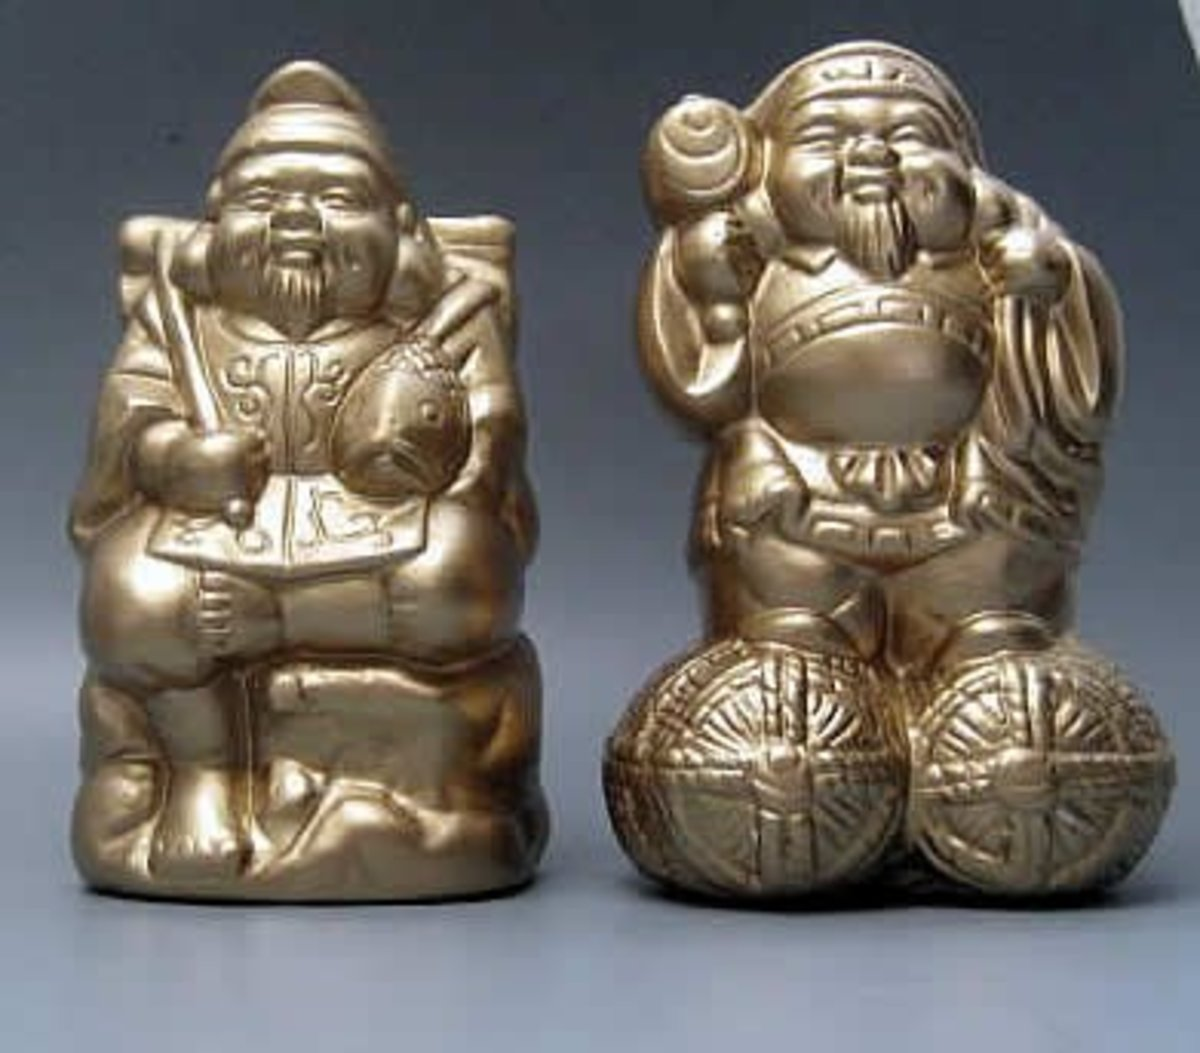 Ceramic statues of Ebisu and Daikokuten.